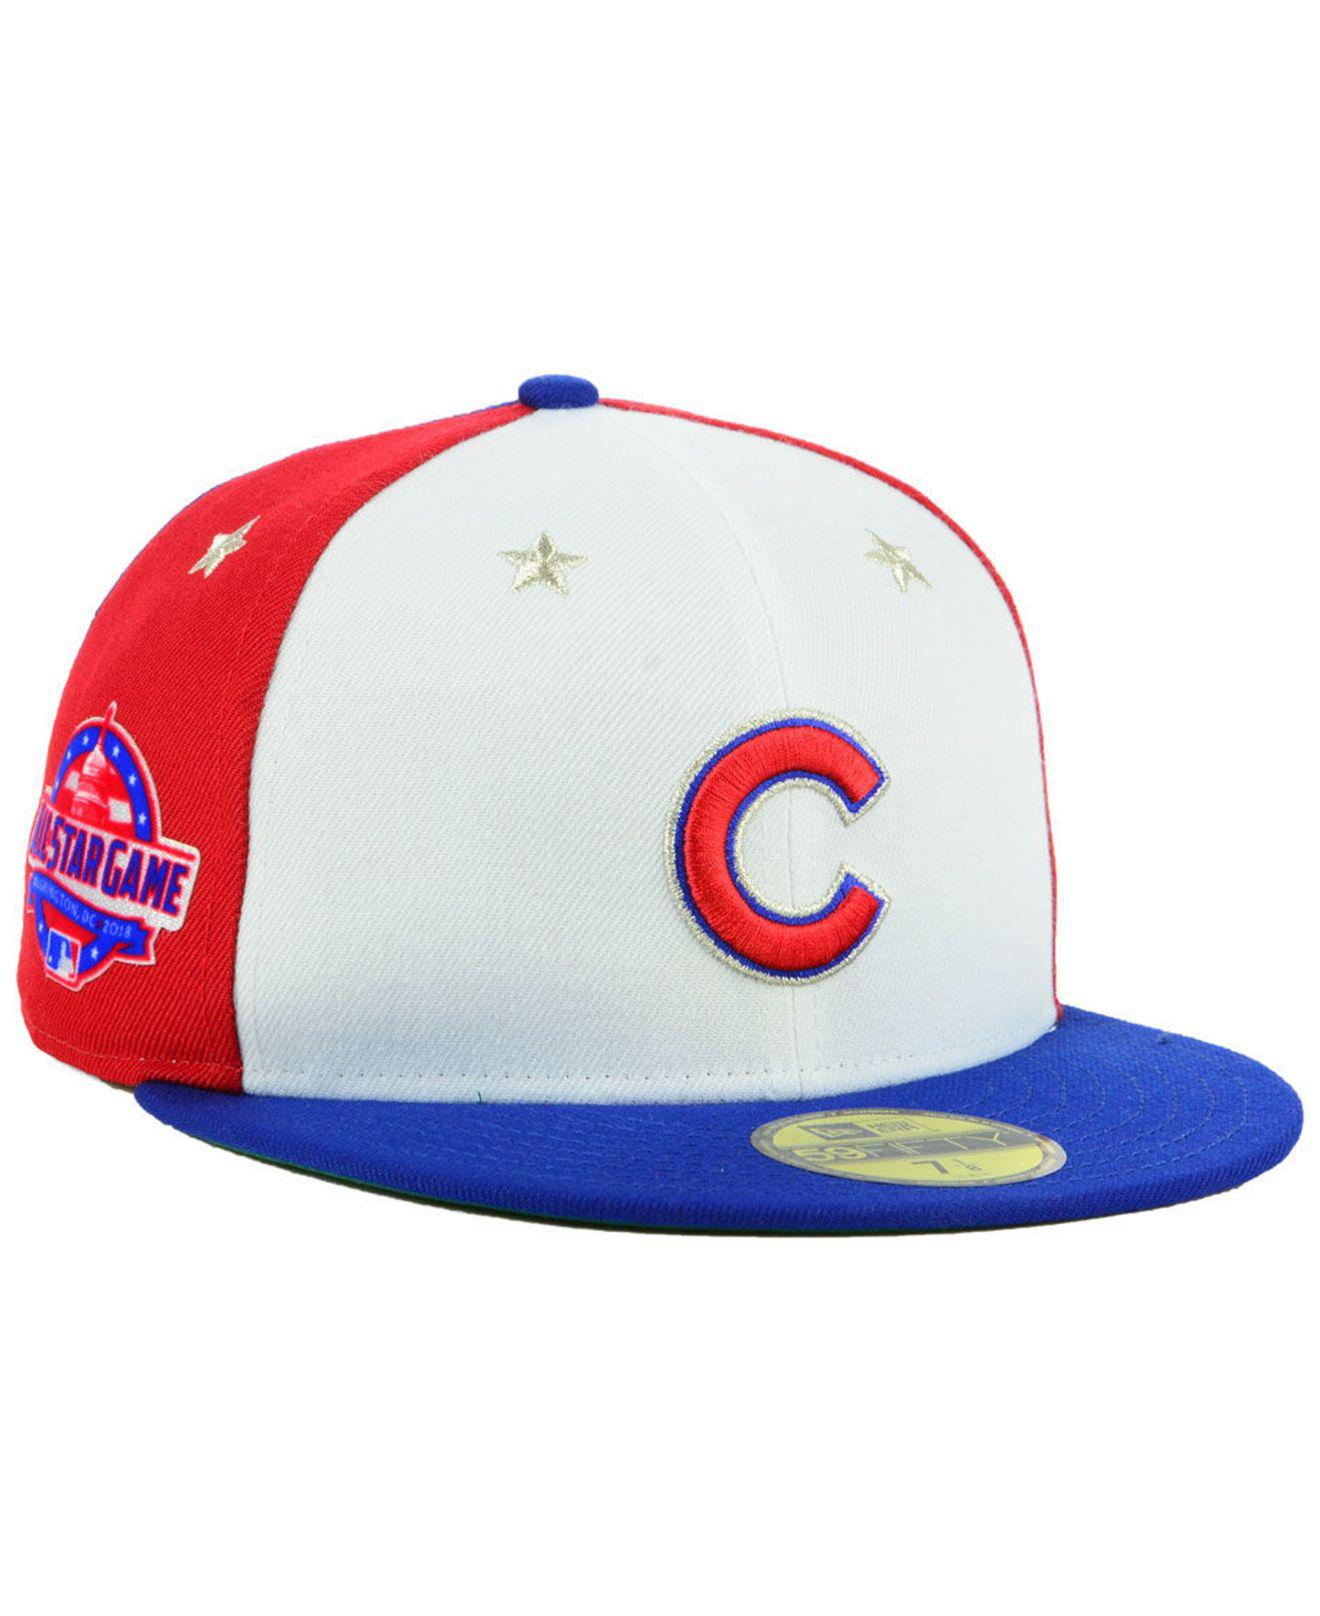 a42fbdd8fd1 Lyst - Ktz Chicago Cubs All Star Game Patch 59fifty Fitted Cap for Men